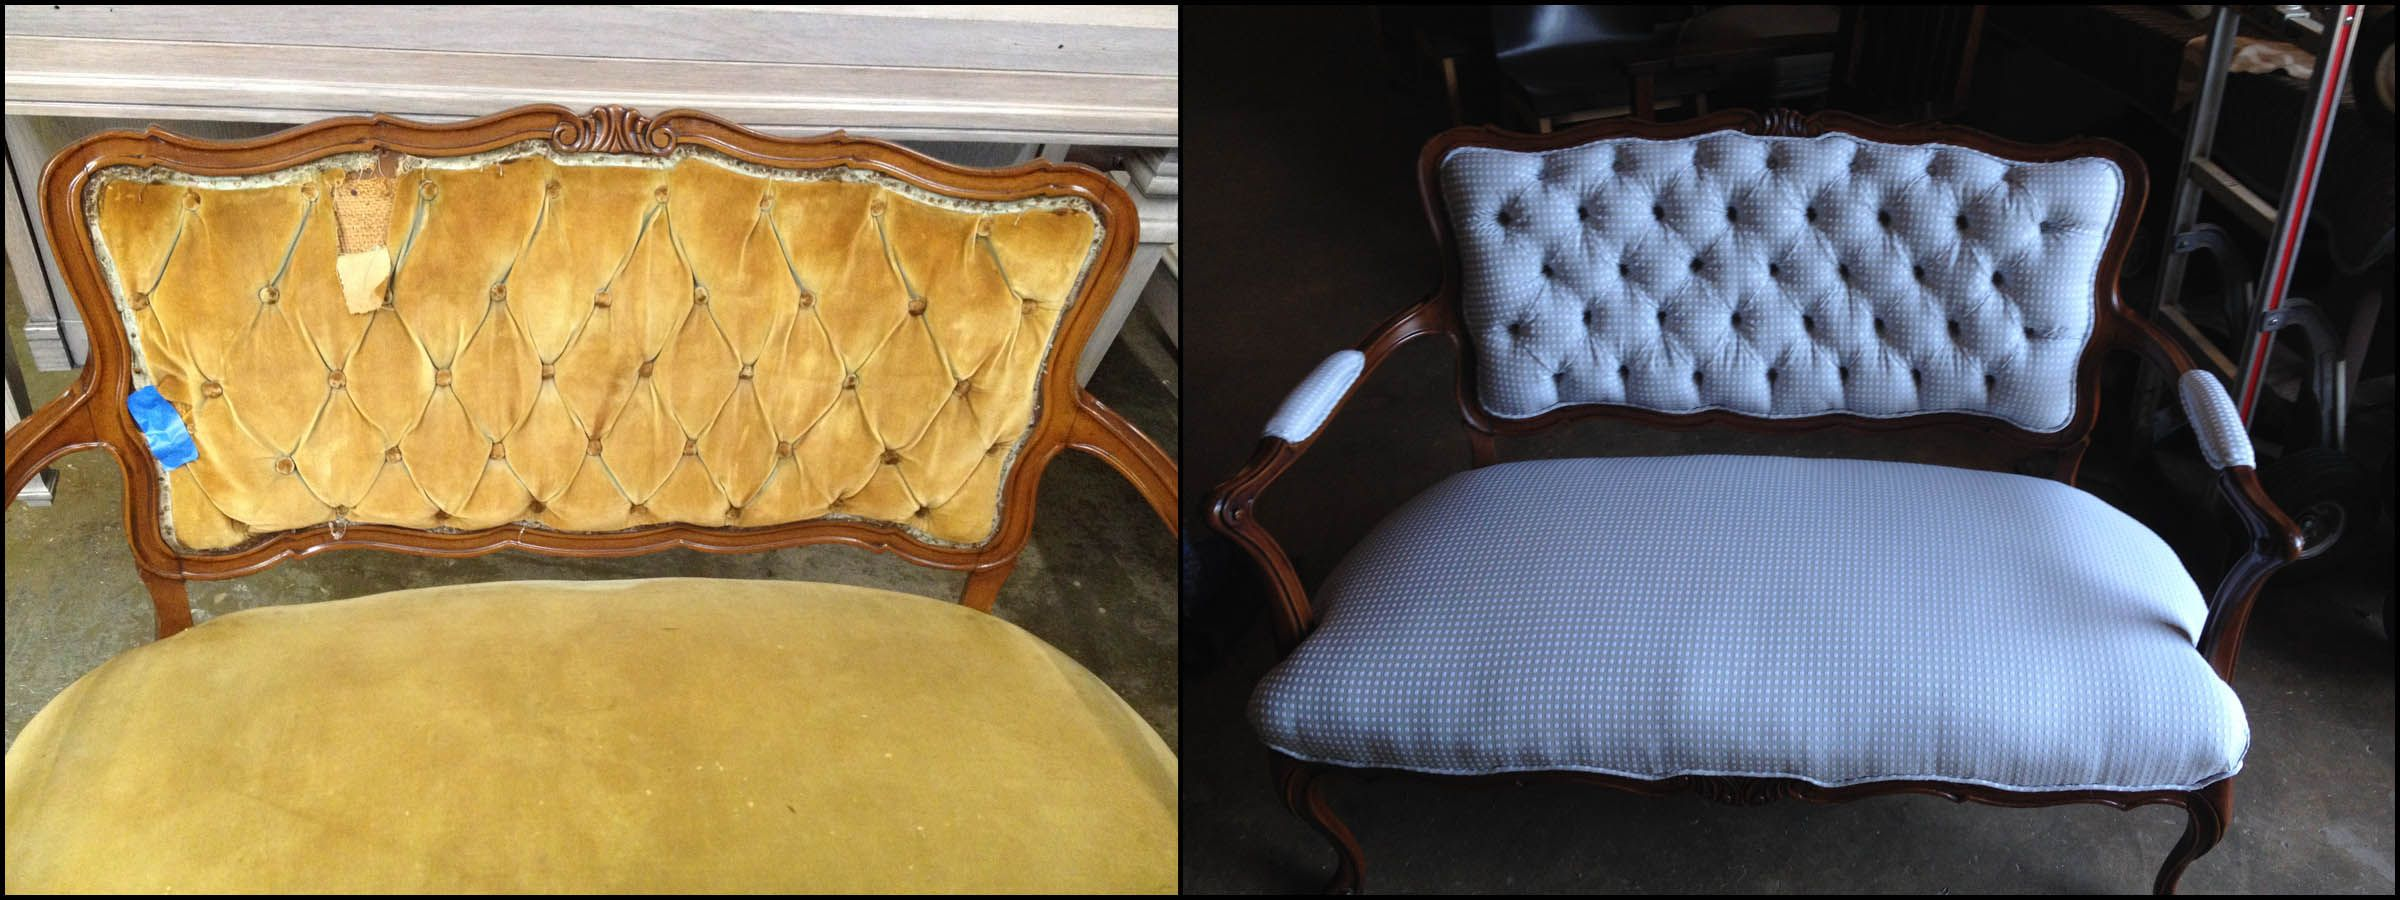 Furniture Re Upholstery Can Be A Major Concern For Old, Sentimental  Furniture. Call Mumford At For Upholstery U0026 Repairs Near Raleigh, NC.